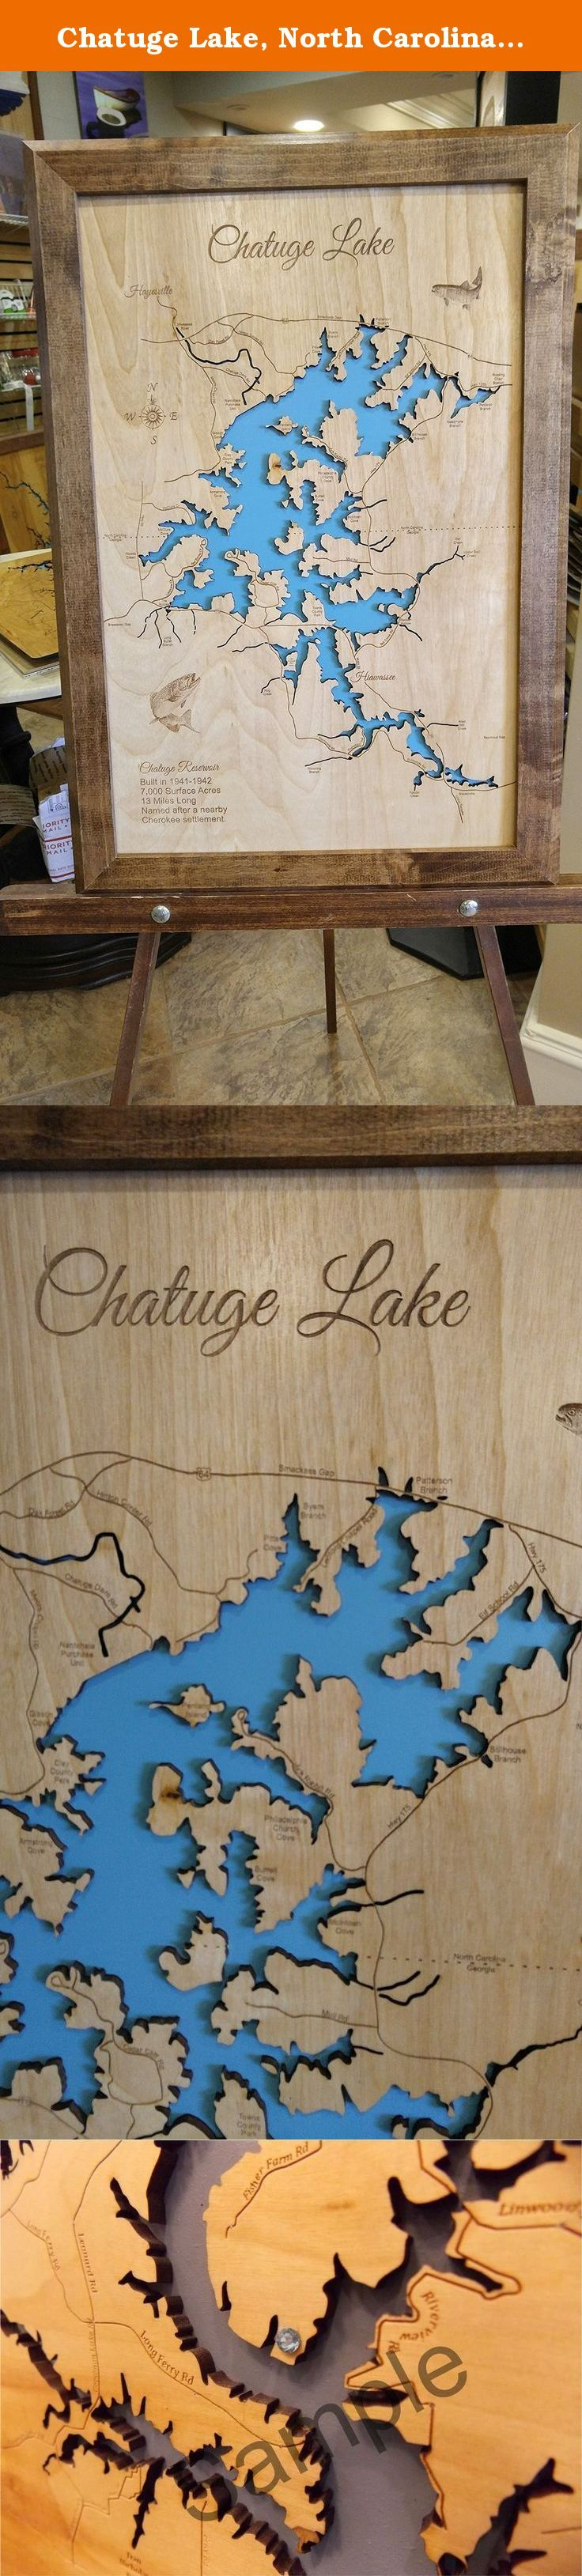 Chatuge Lake, North Carolina, Georgia: Framed Wood Map Wall Hanging. This is a beautifully detailed, laser engraved and precision cut topographical Map of Chatuge Lake in North Carolina with the following interesting stats carved into it: 7000 Surface Acres, 13 Miles Long, Named after a nearby Cherokee settlement. Our handmade, solid wood, English chestnut stained frame gives it the classic look and is available in three sizes. Interesting factoid: Chatuge Dam is an earth-and-rock dam 144...